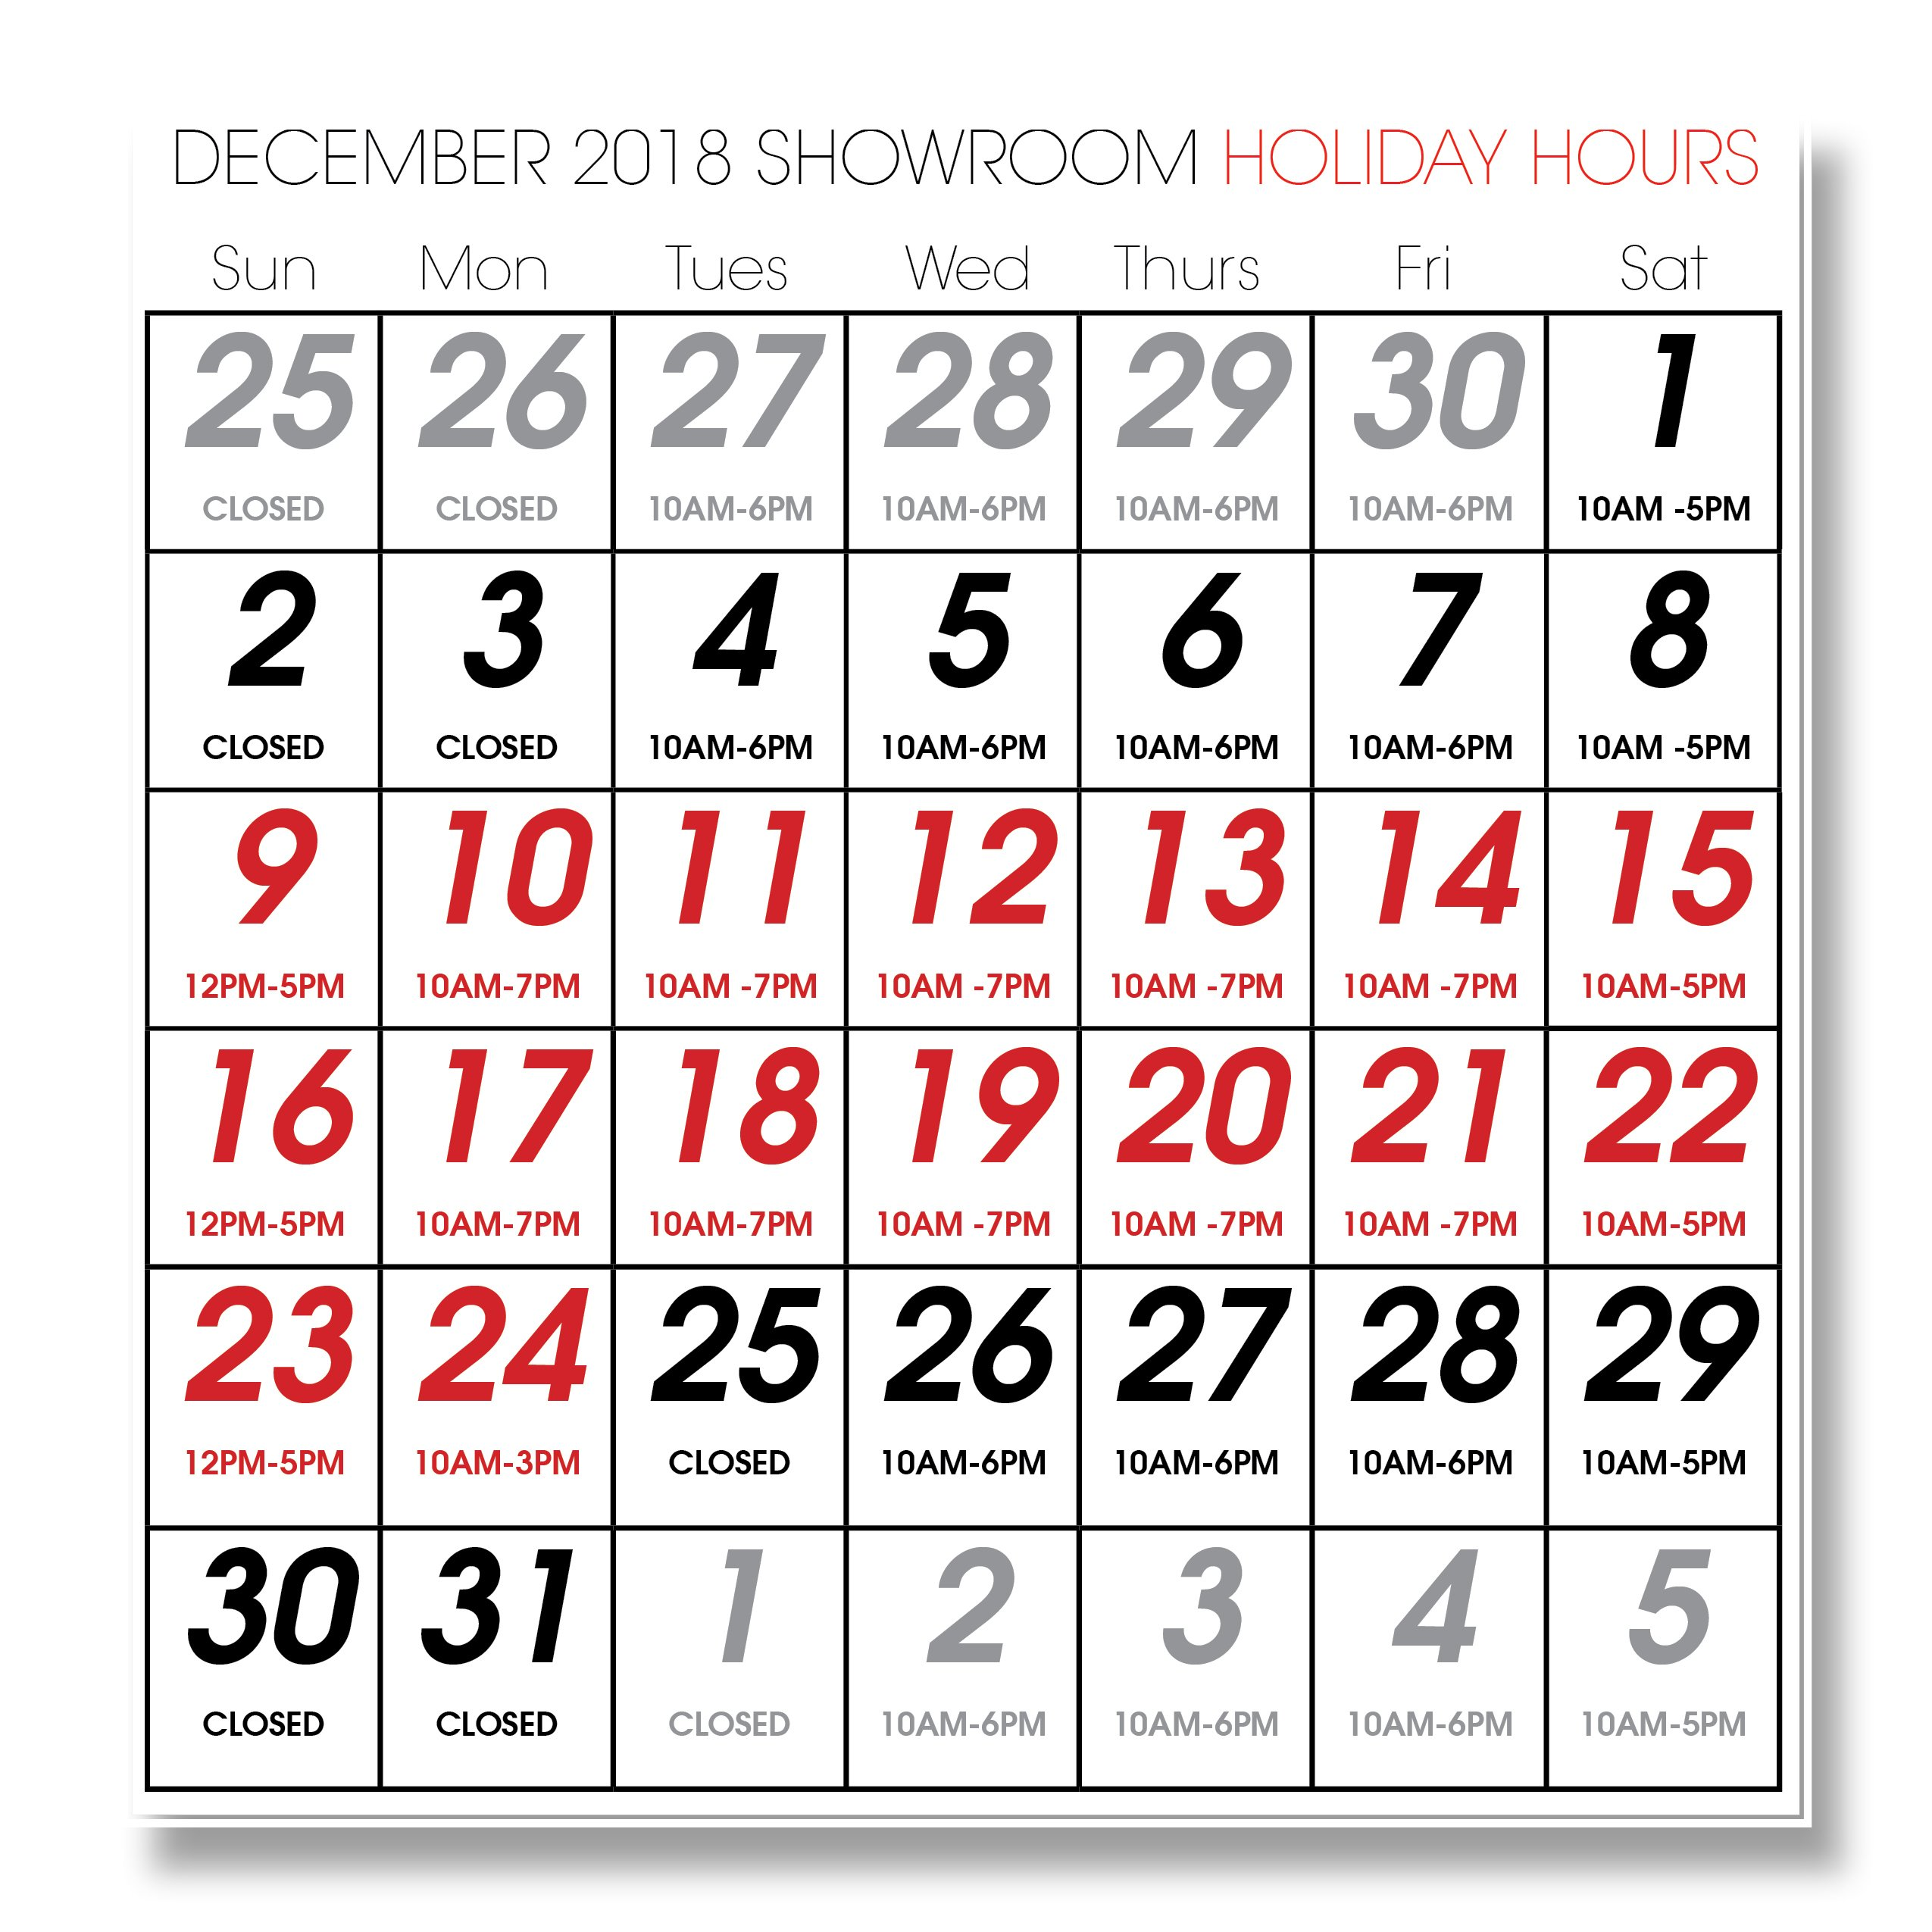 Holiday Schedule for 2018